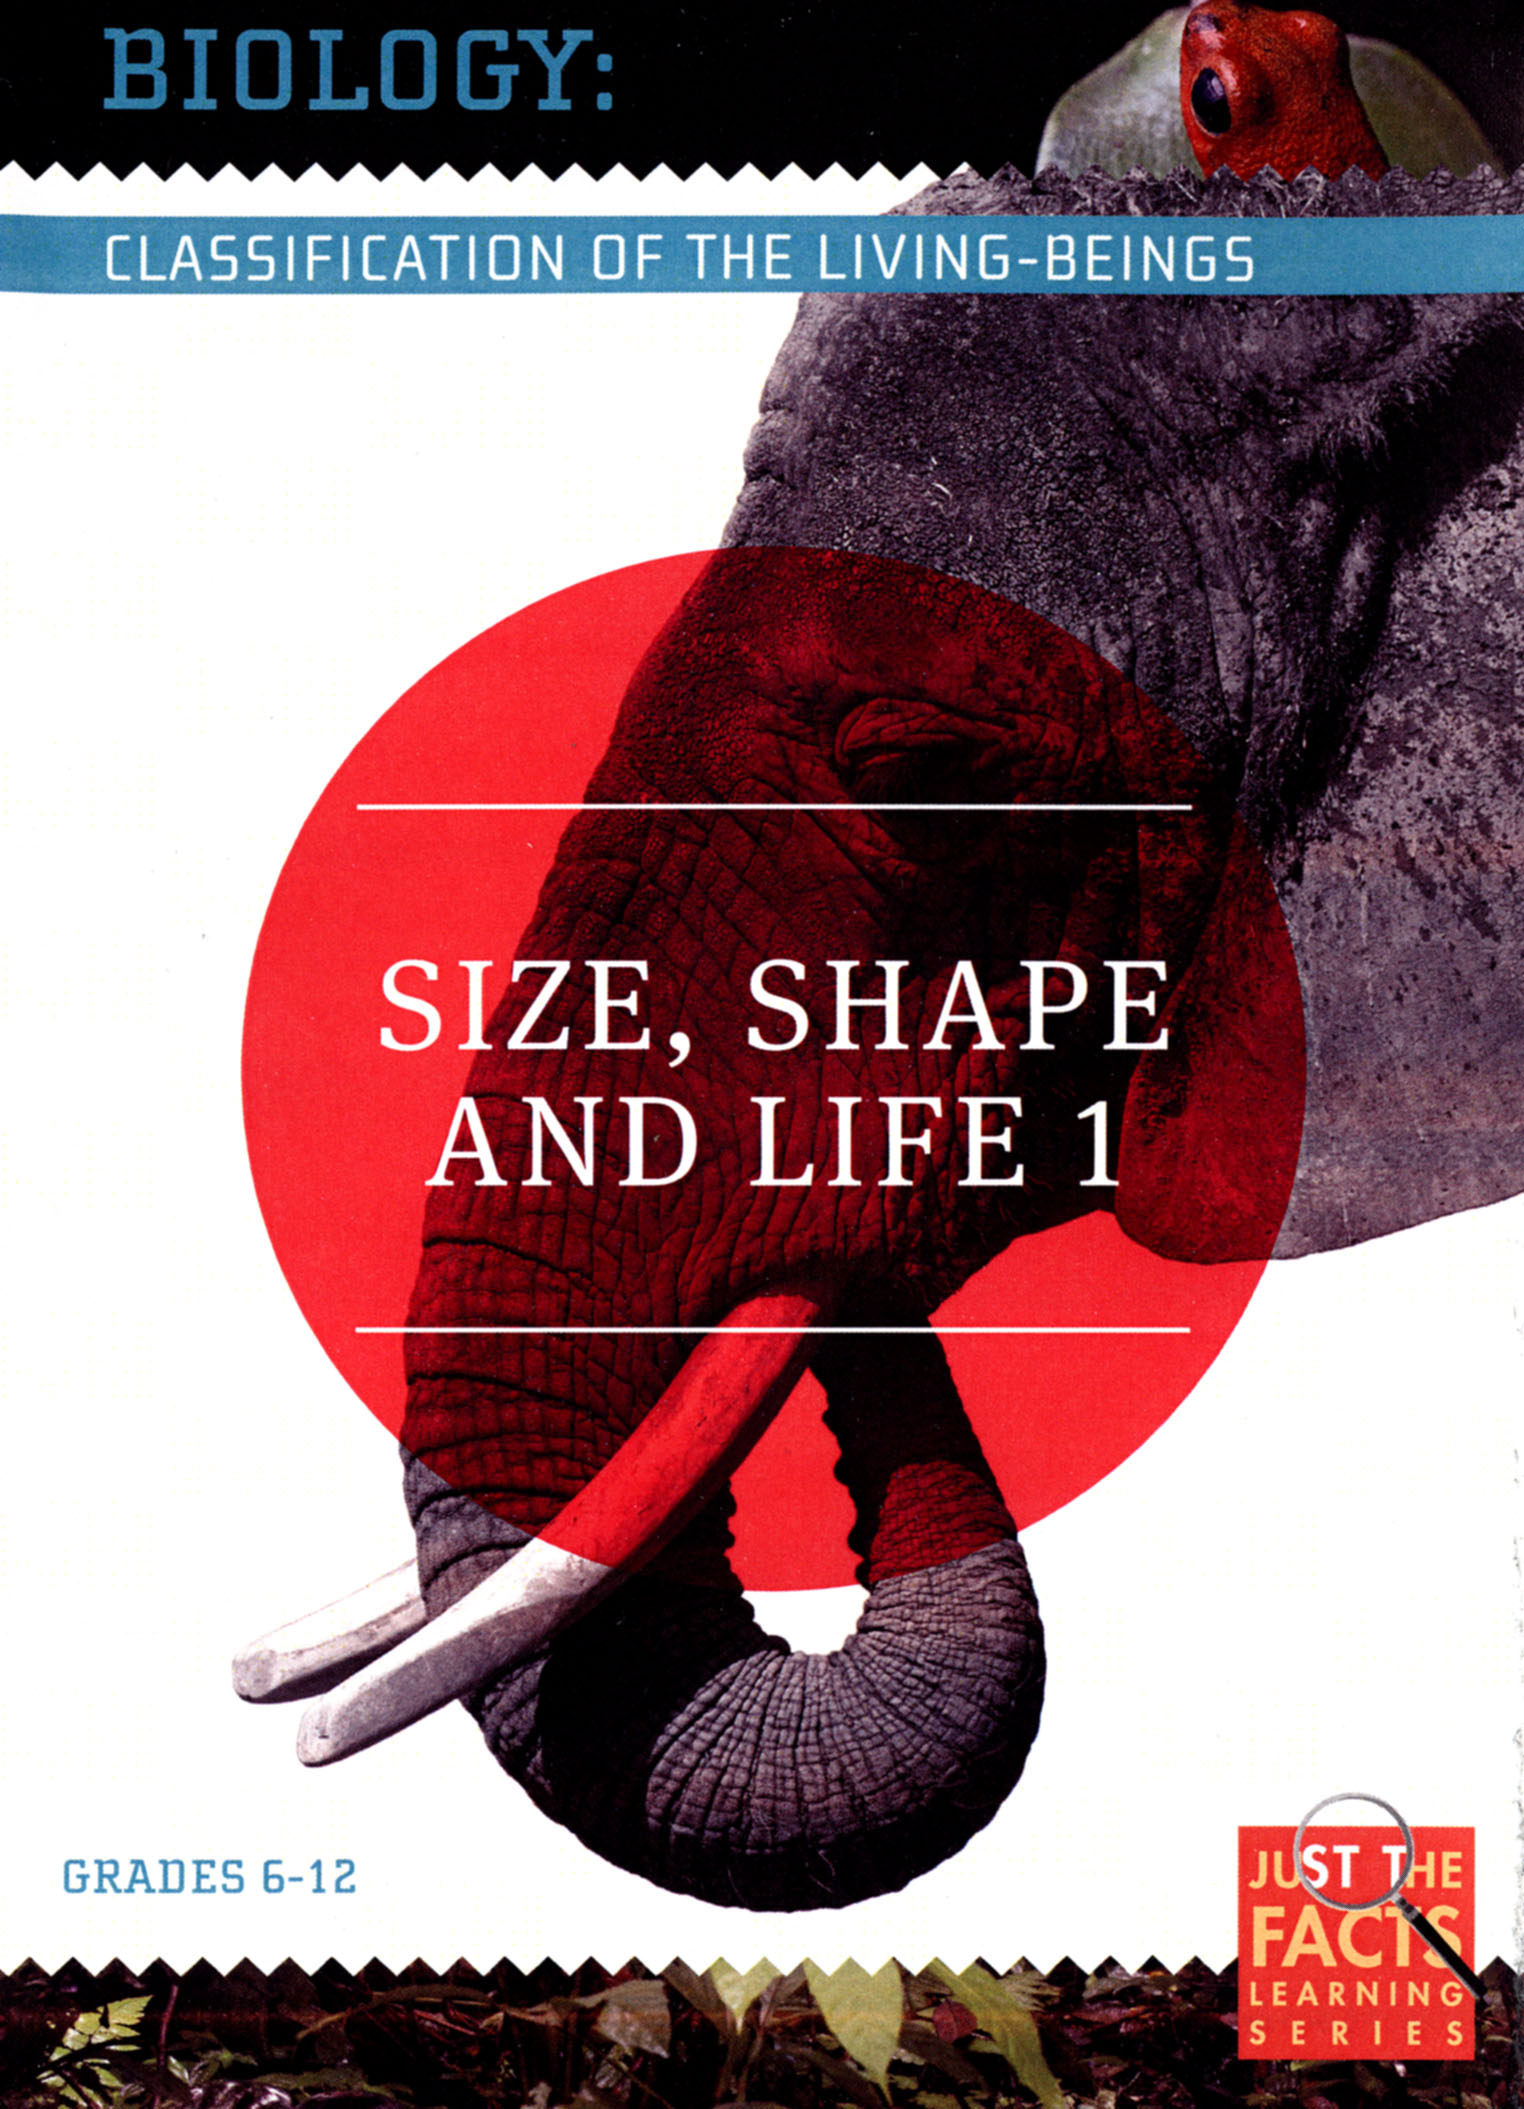 Biology Classification: Size, Shape and Life, Vol. 1